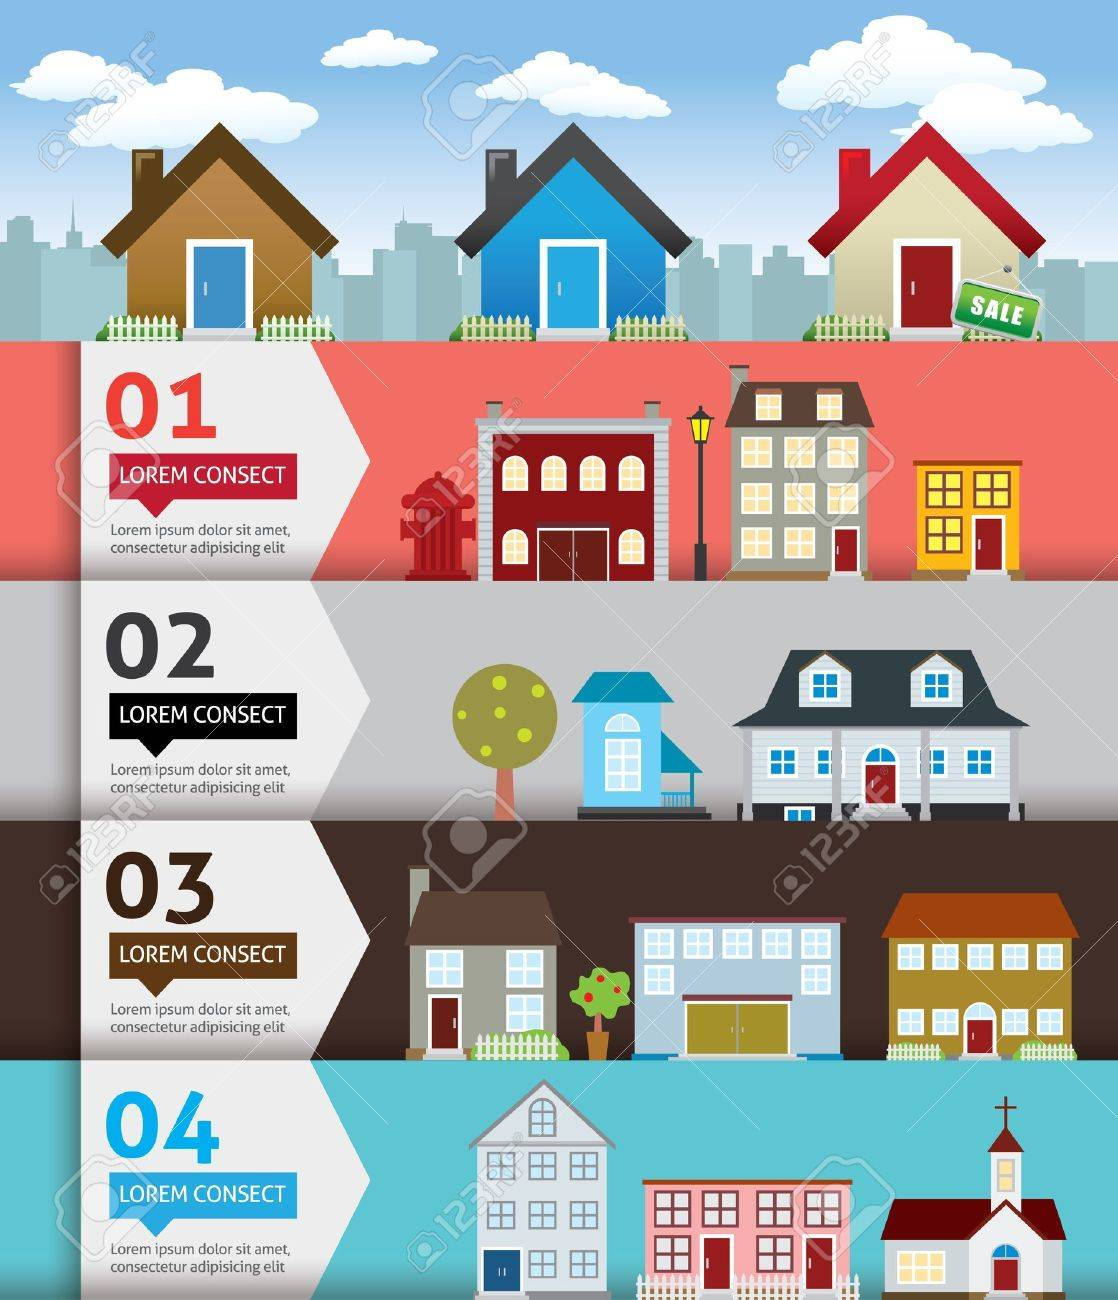 City banenr retro illustration with colorful icons Stock Vector - 20325273